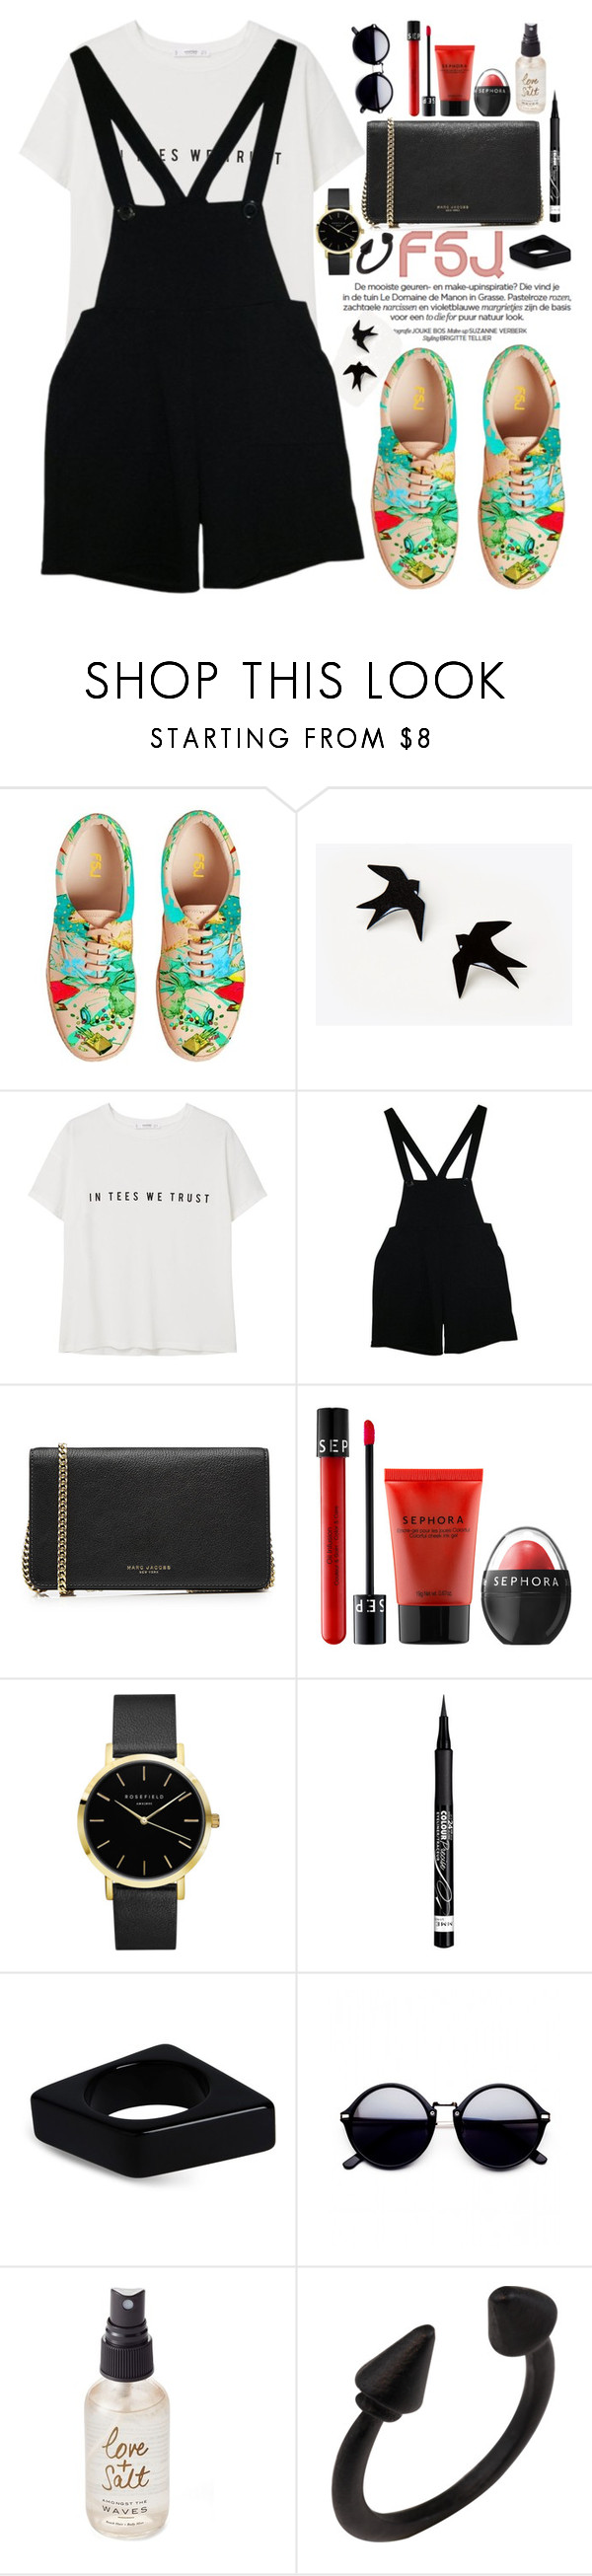 """""""FSJshoes"""" by oshint ❤ liked on Polyvore featuring MANGO, American Apparel, Marc Jacobs, Sephora Collection, Rimmel, Marni, Olivine, shoes and fsjshoes"""